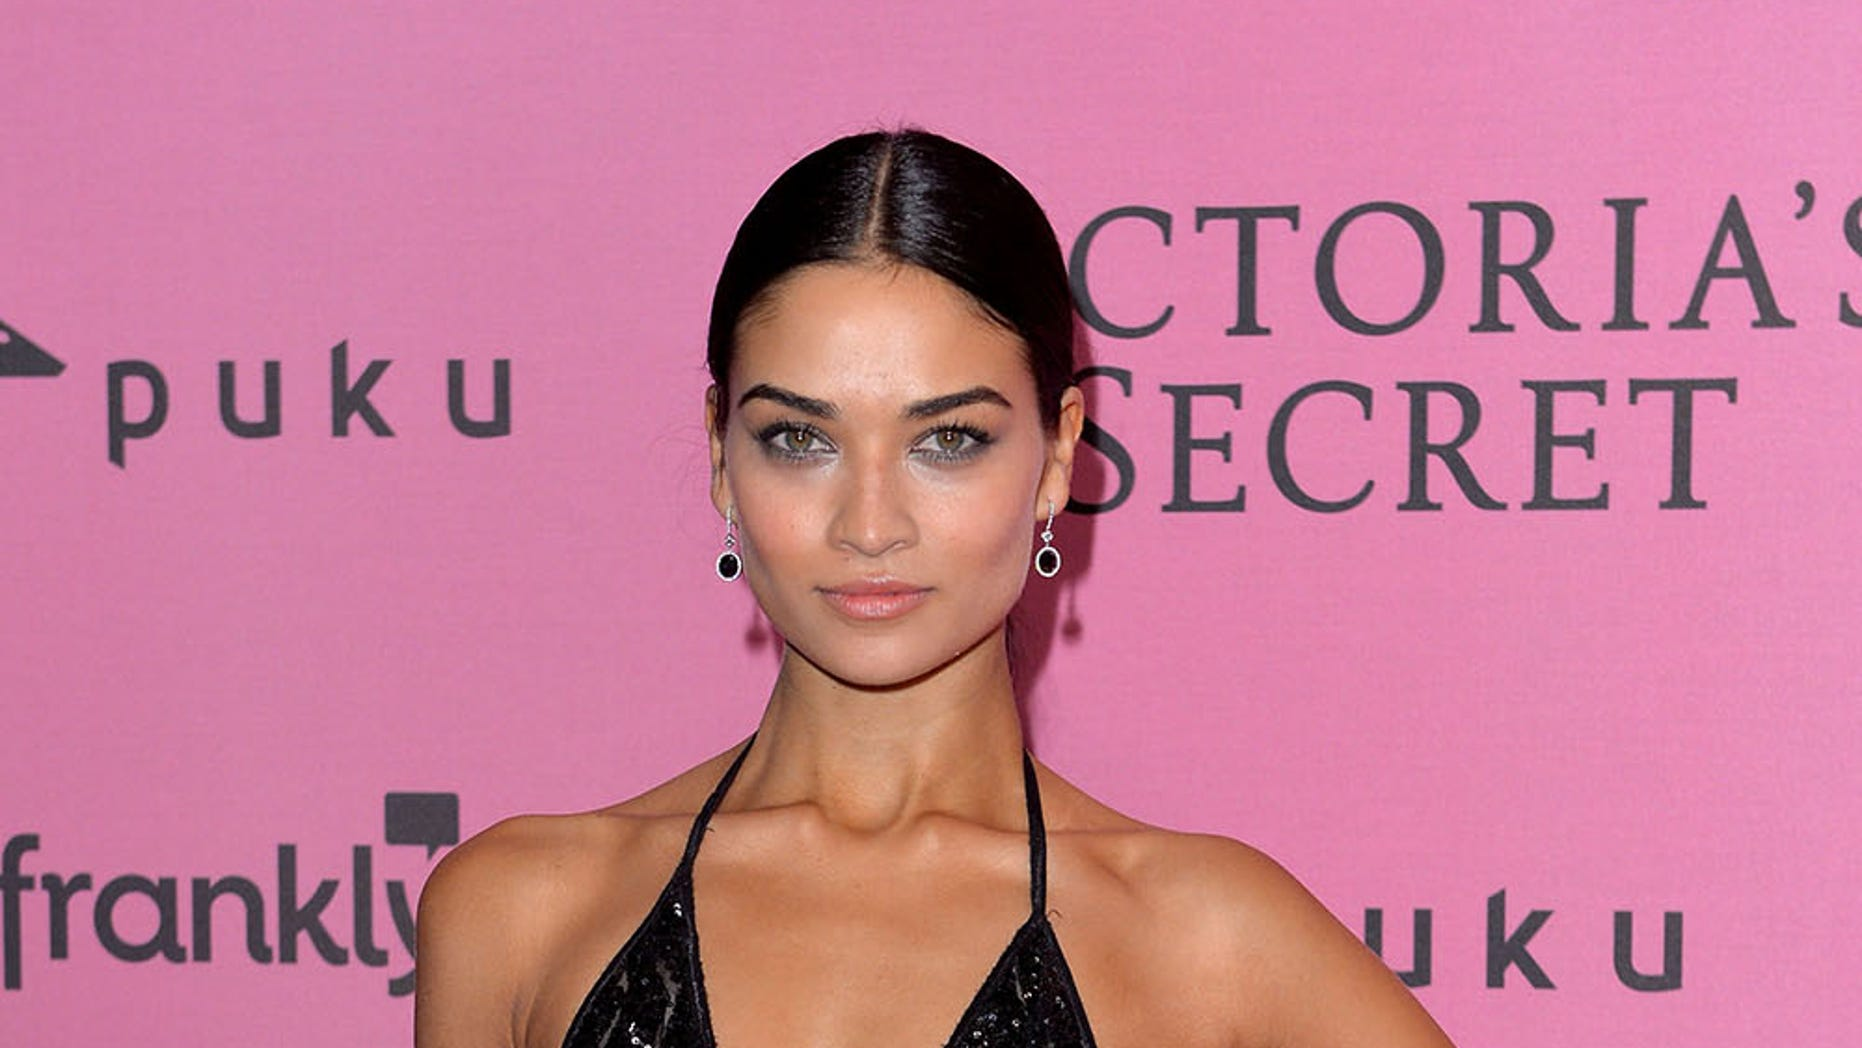 Shanina Shaik, here in 2014, spoke to Fox News about leaving her native Australia for New York City at age 17, coping with discrimination and why she's not fazed by temptation.